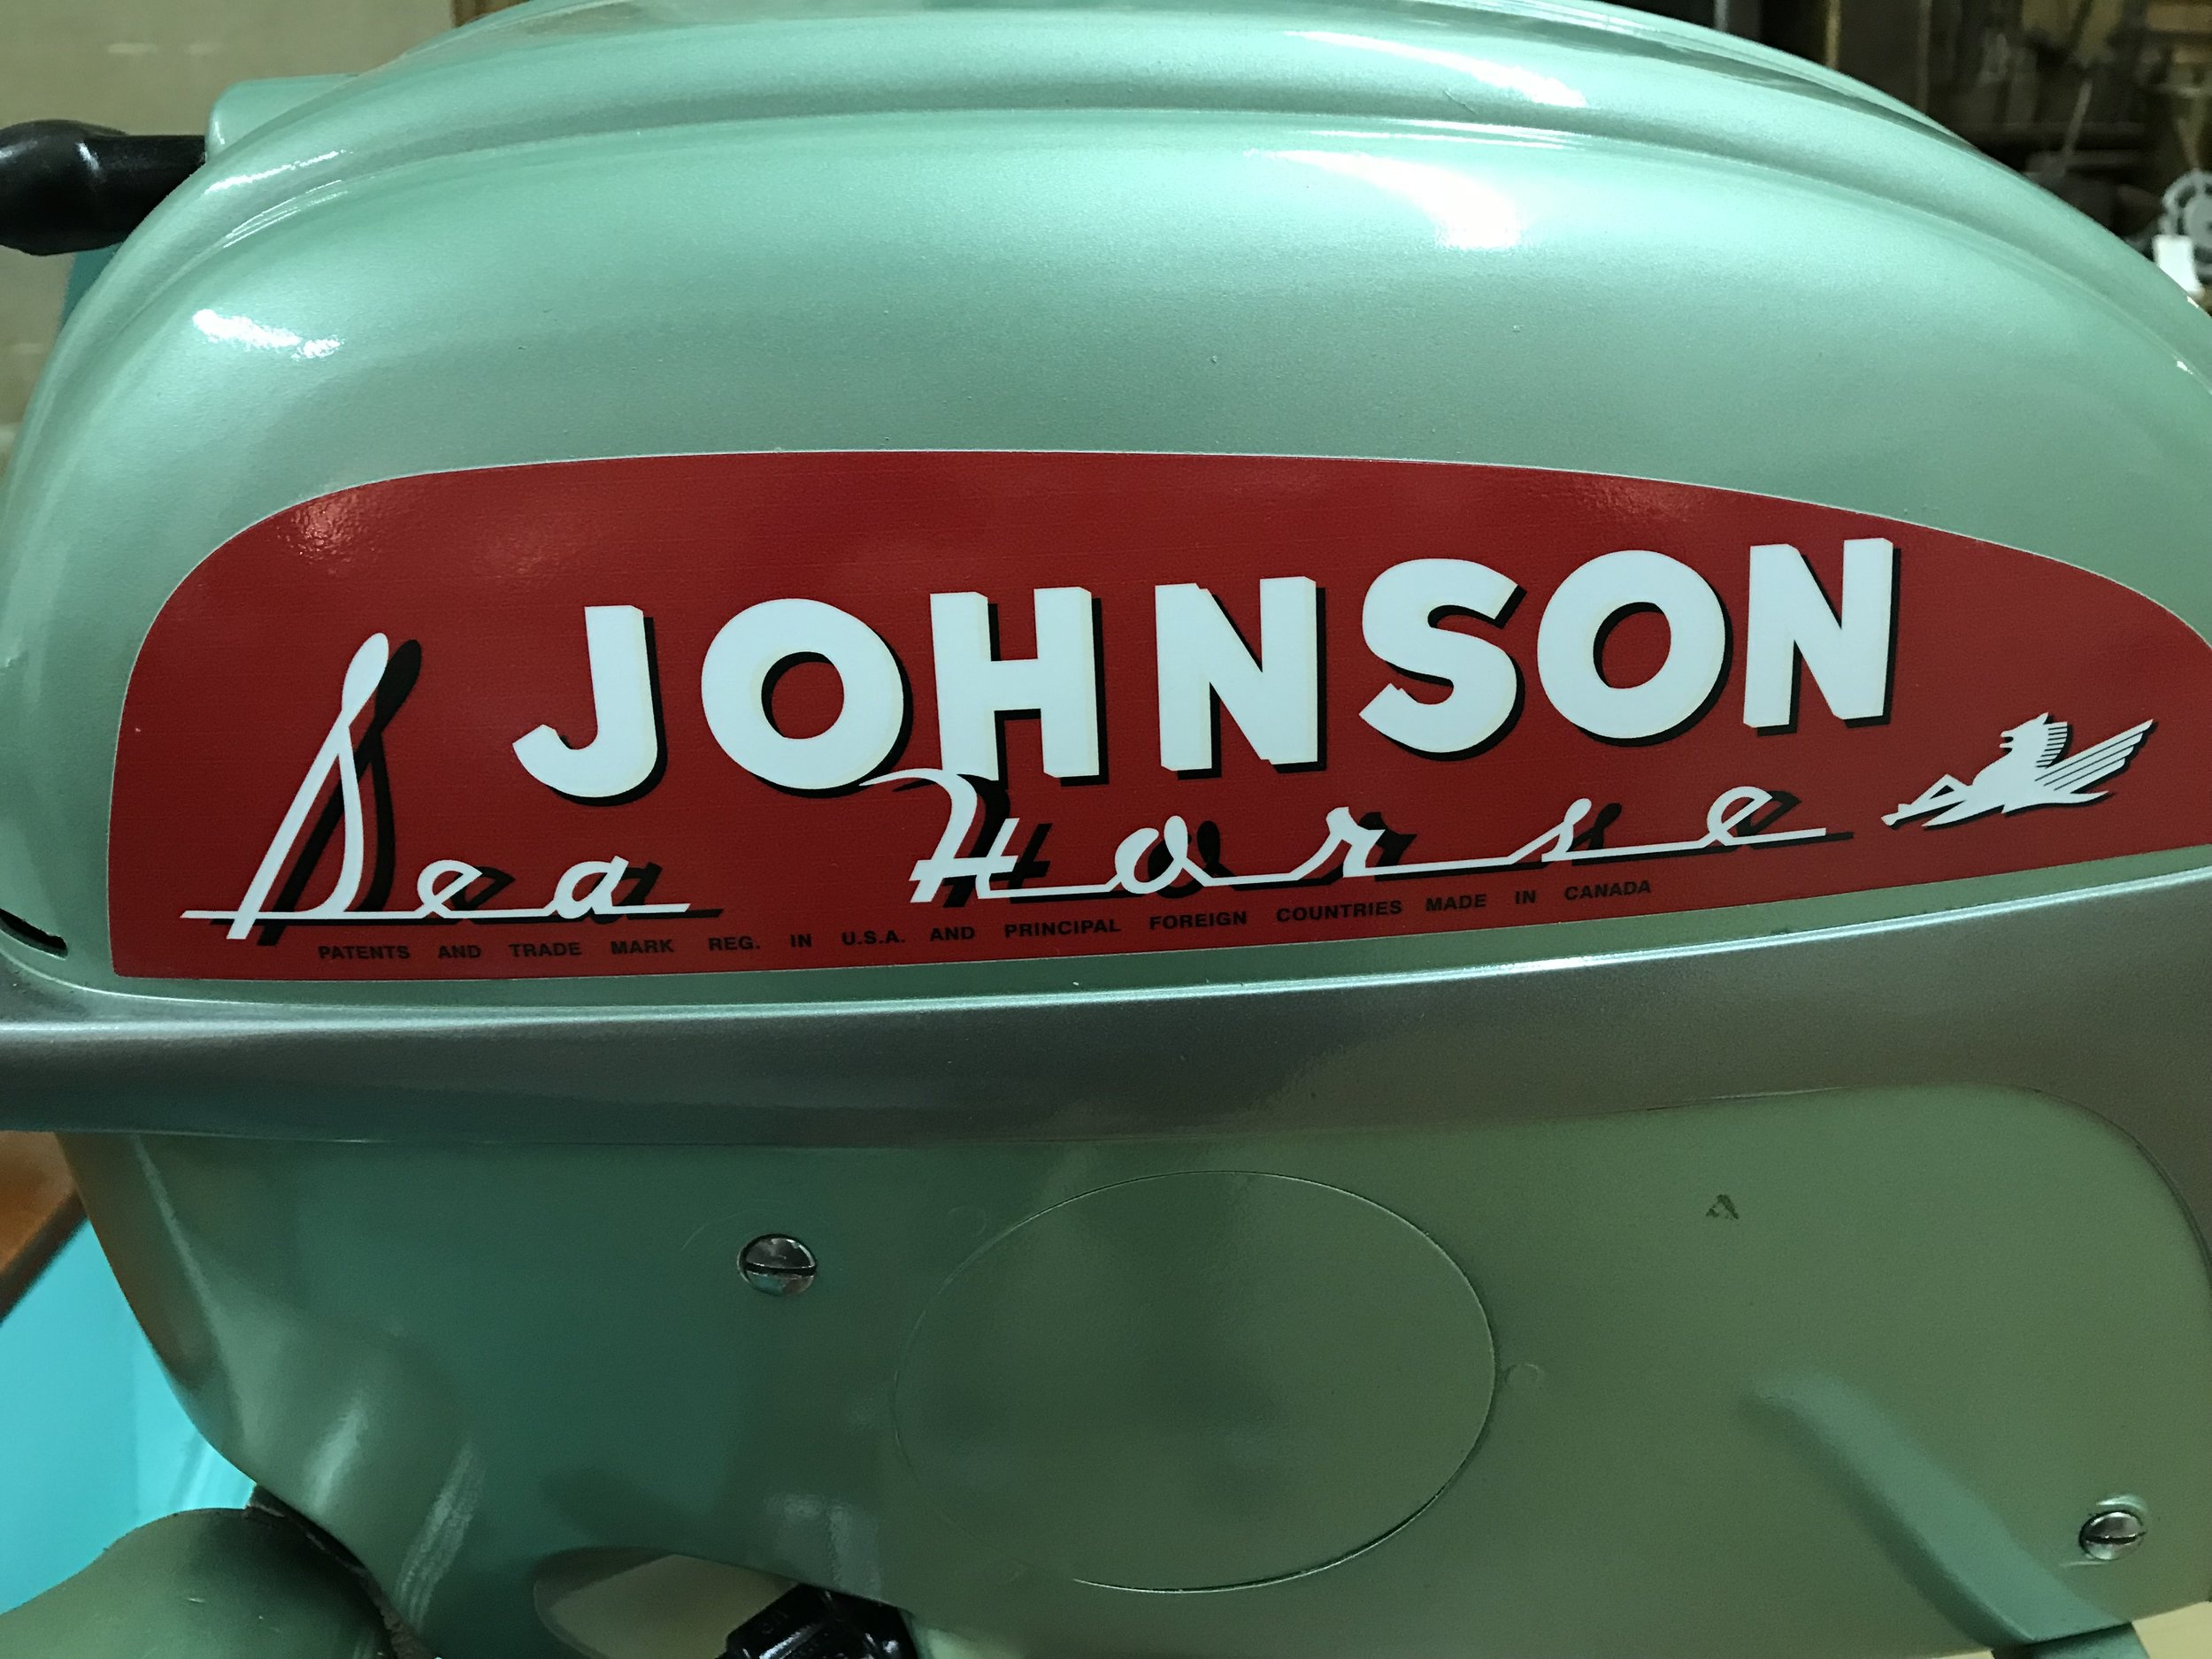 A Johnson outboard motor.